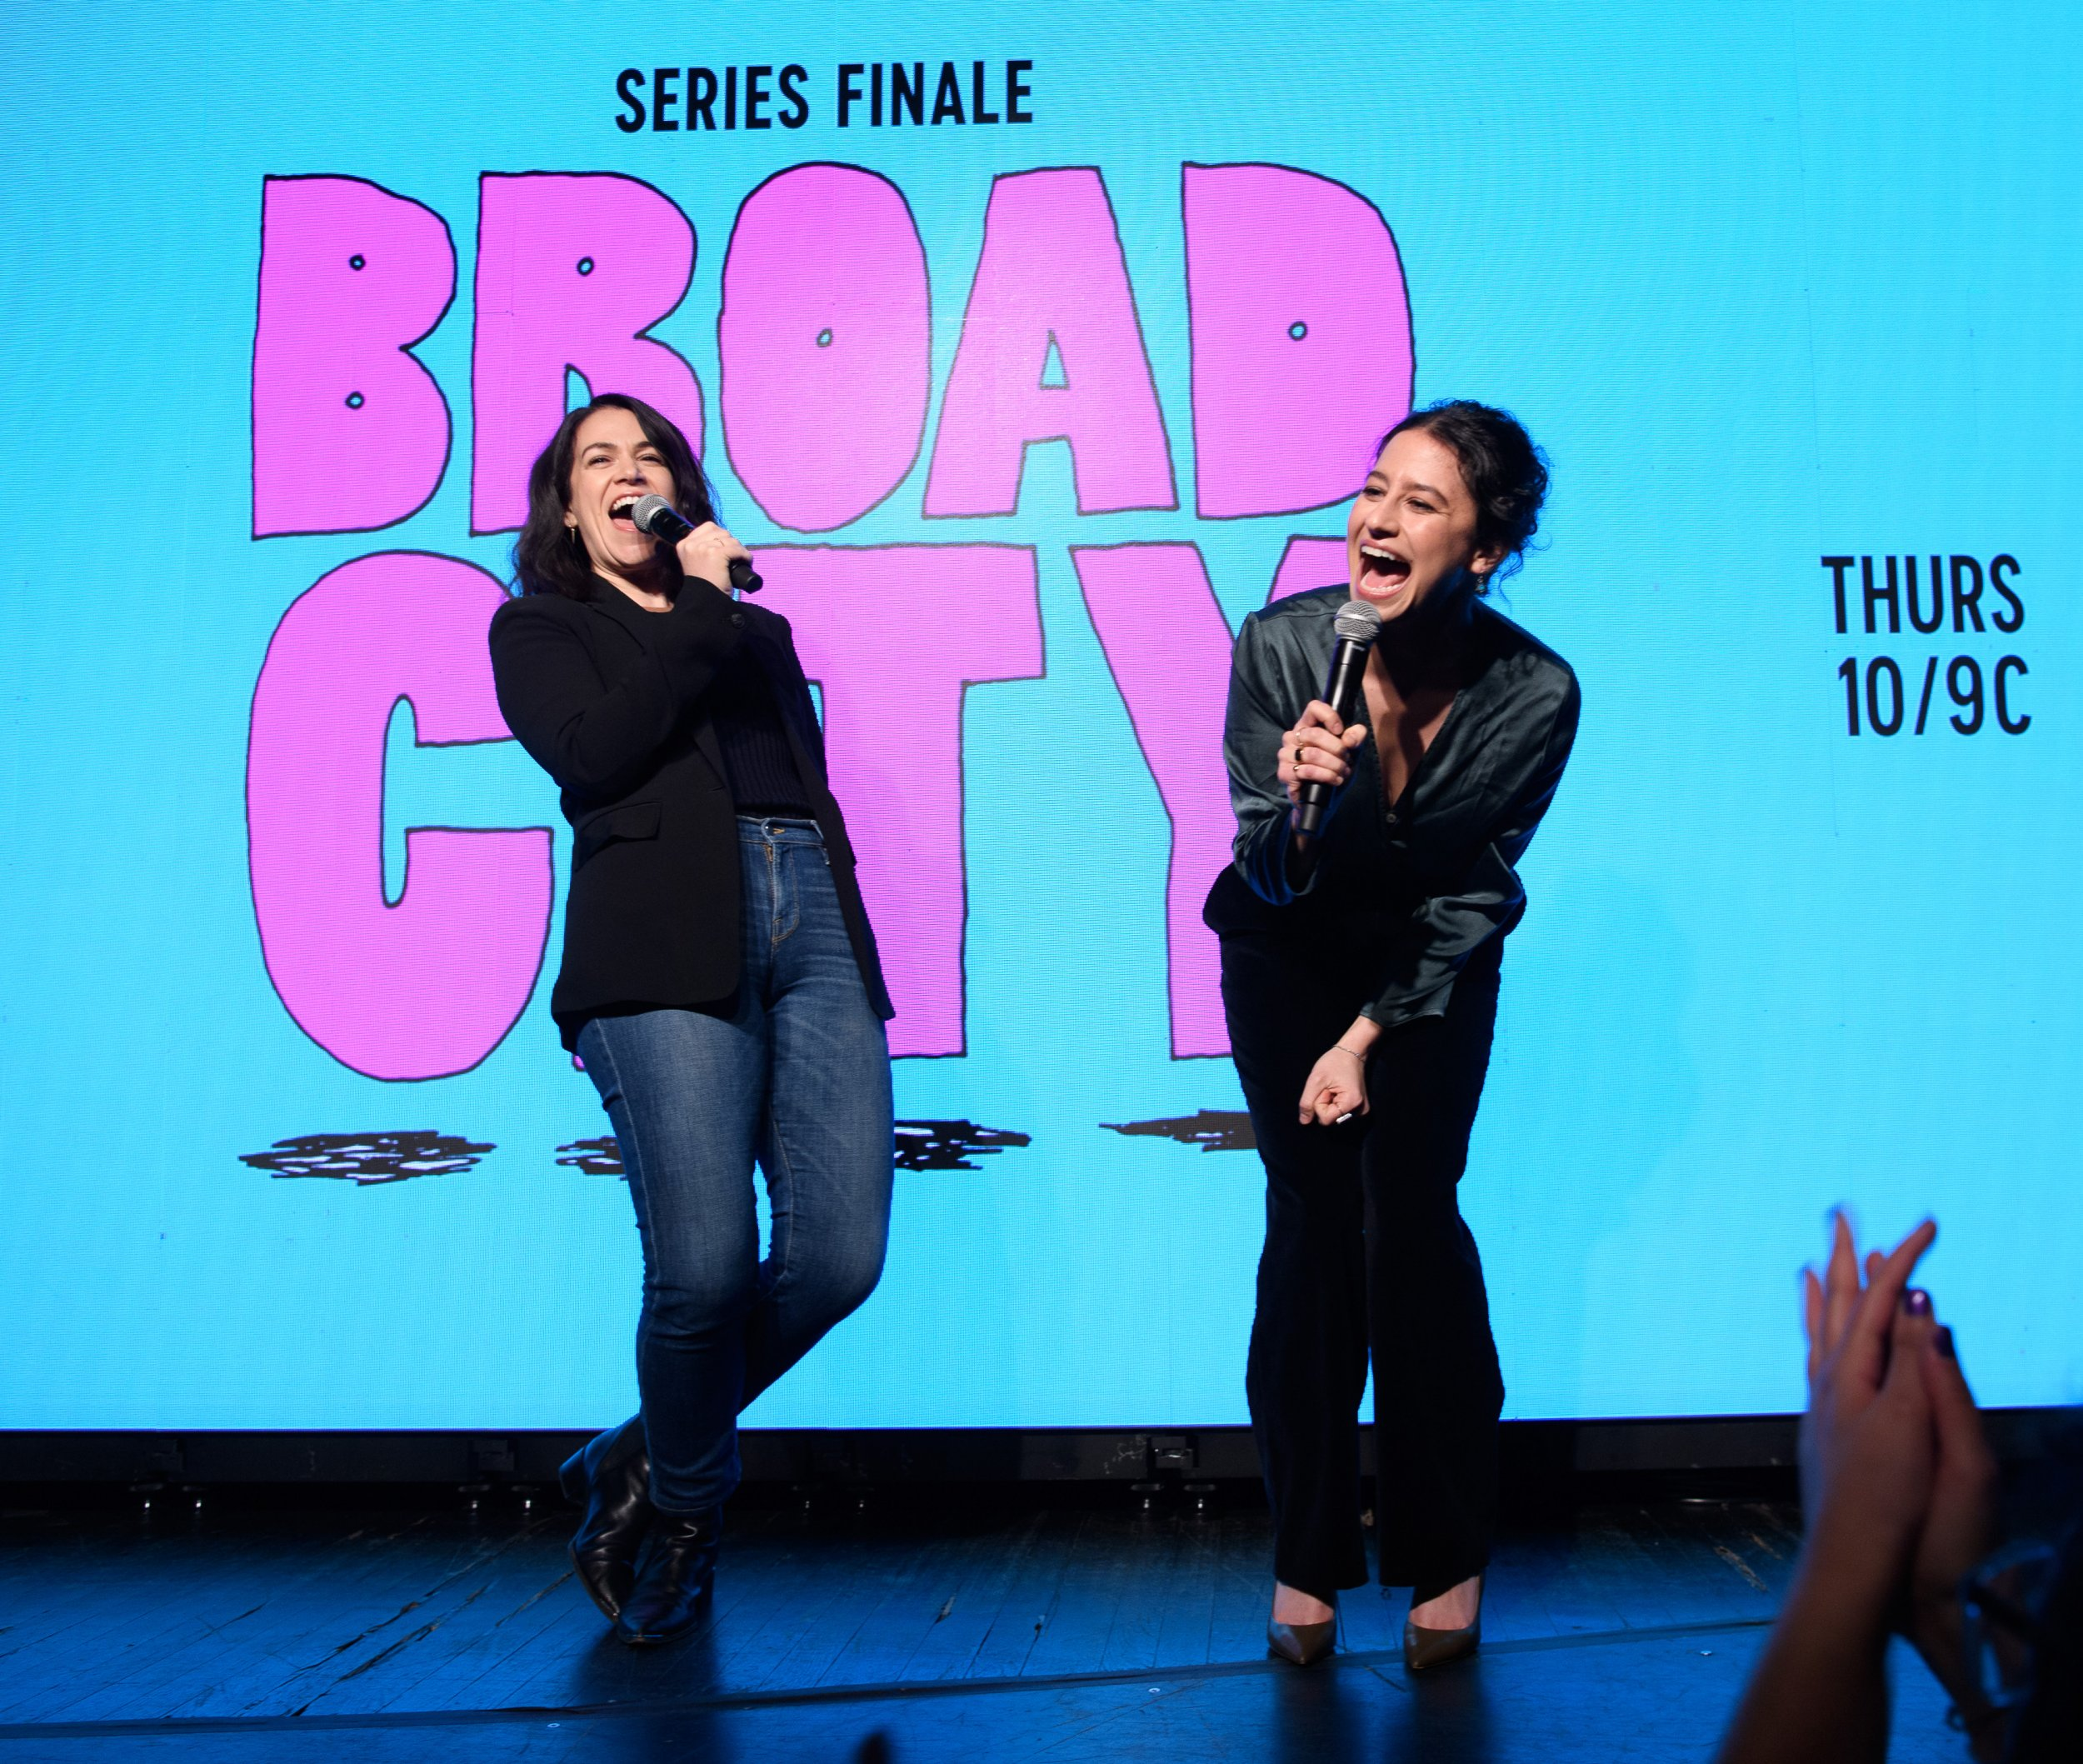 Broad City Series Finale, Funniest Moments Over the Years